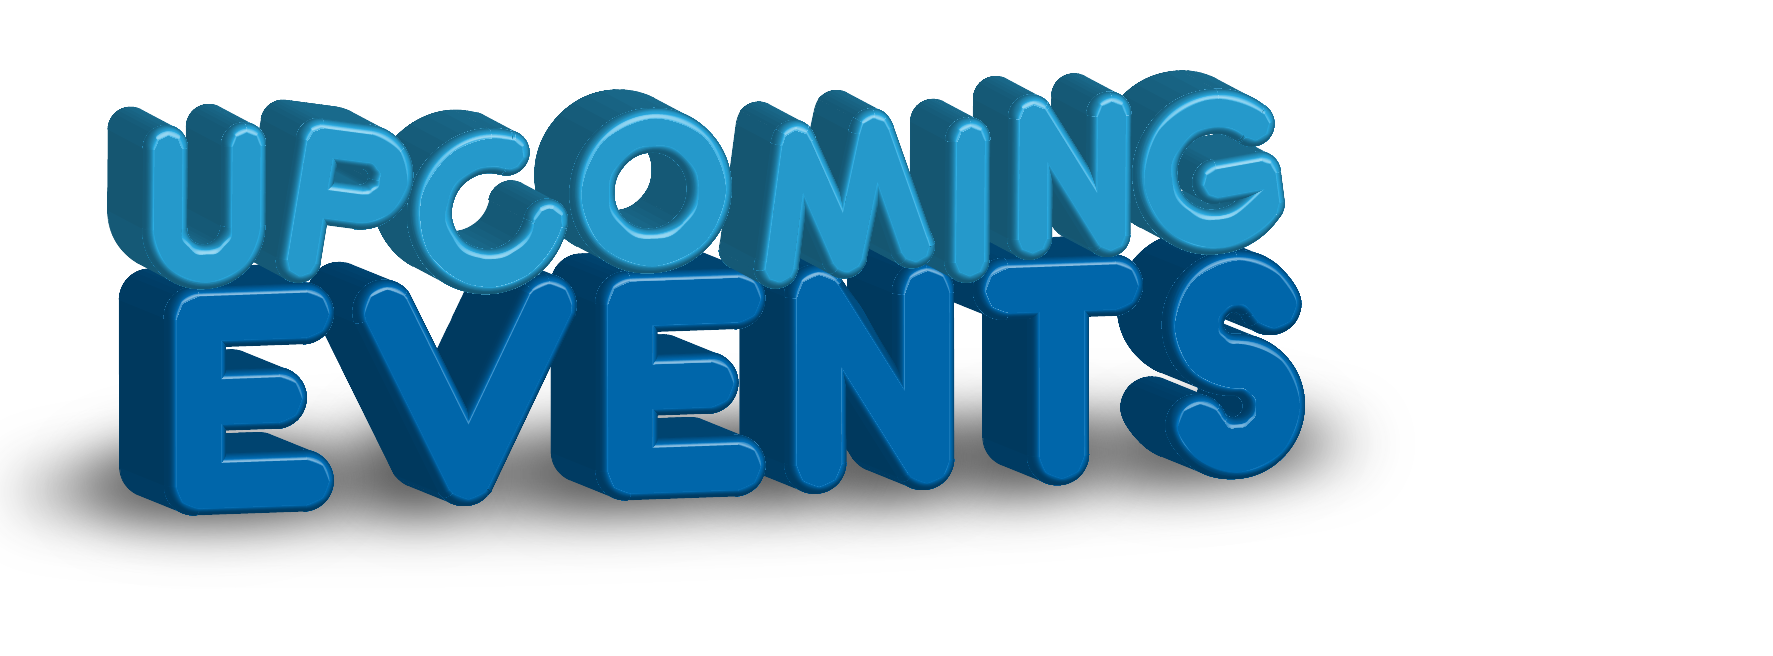 Upcoming Events Weec 100 7fm #ZzwVzC - Clipart Kid